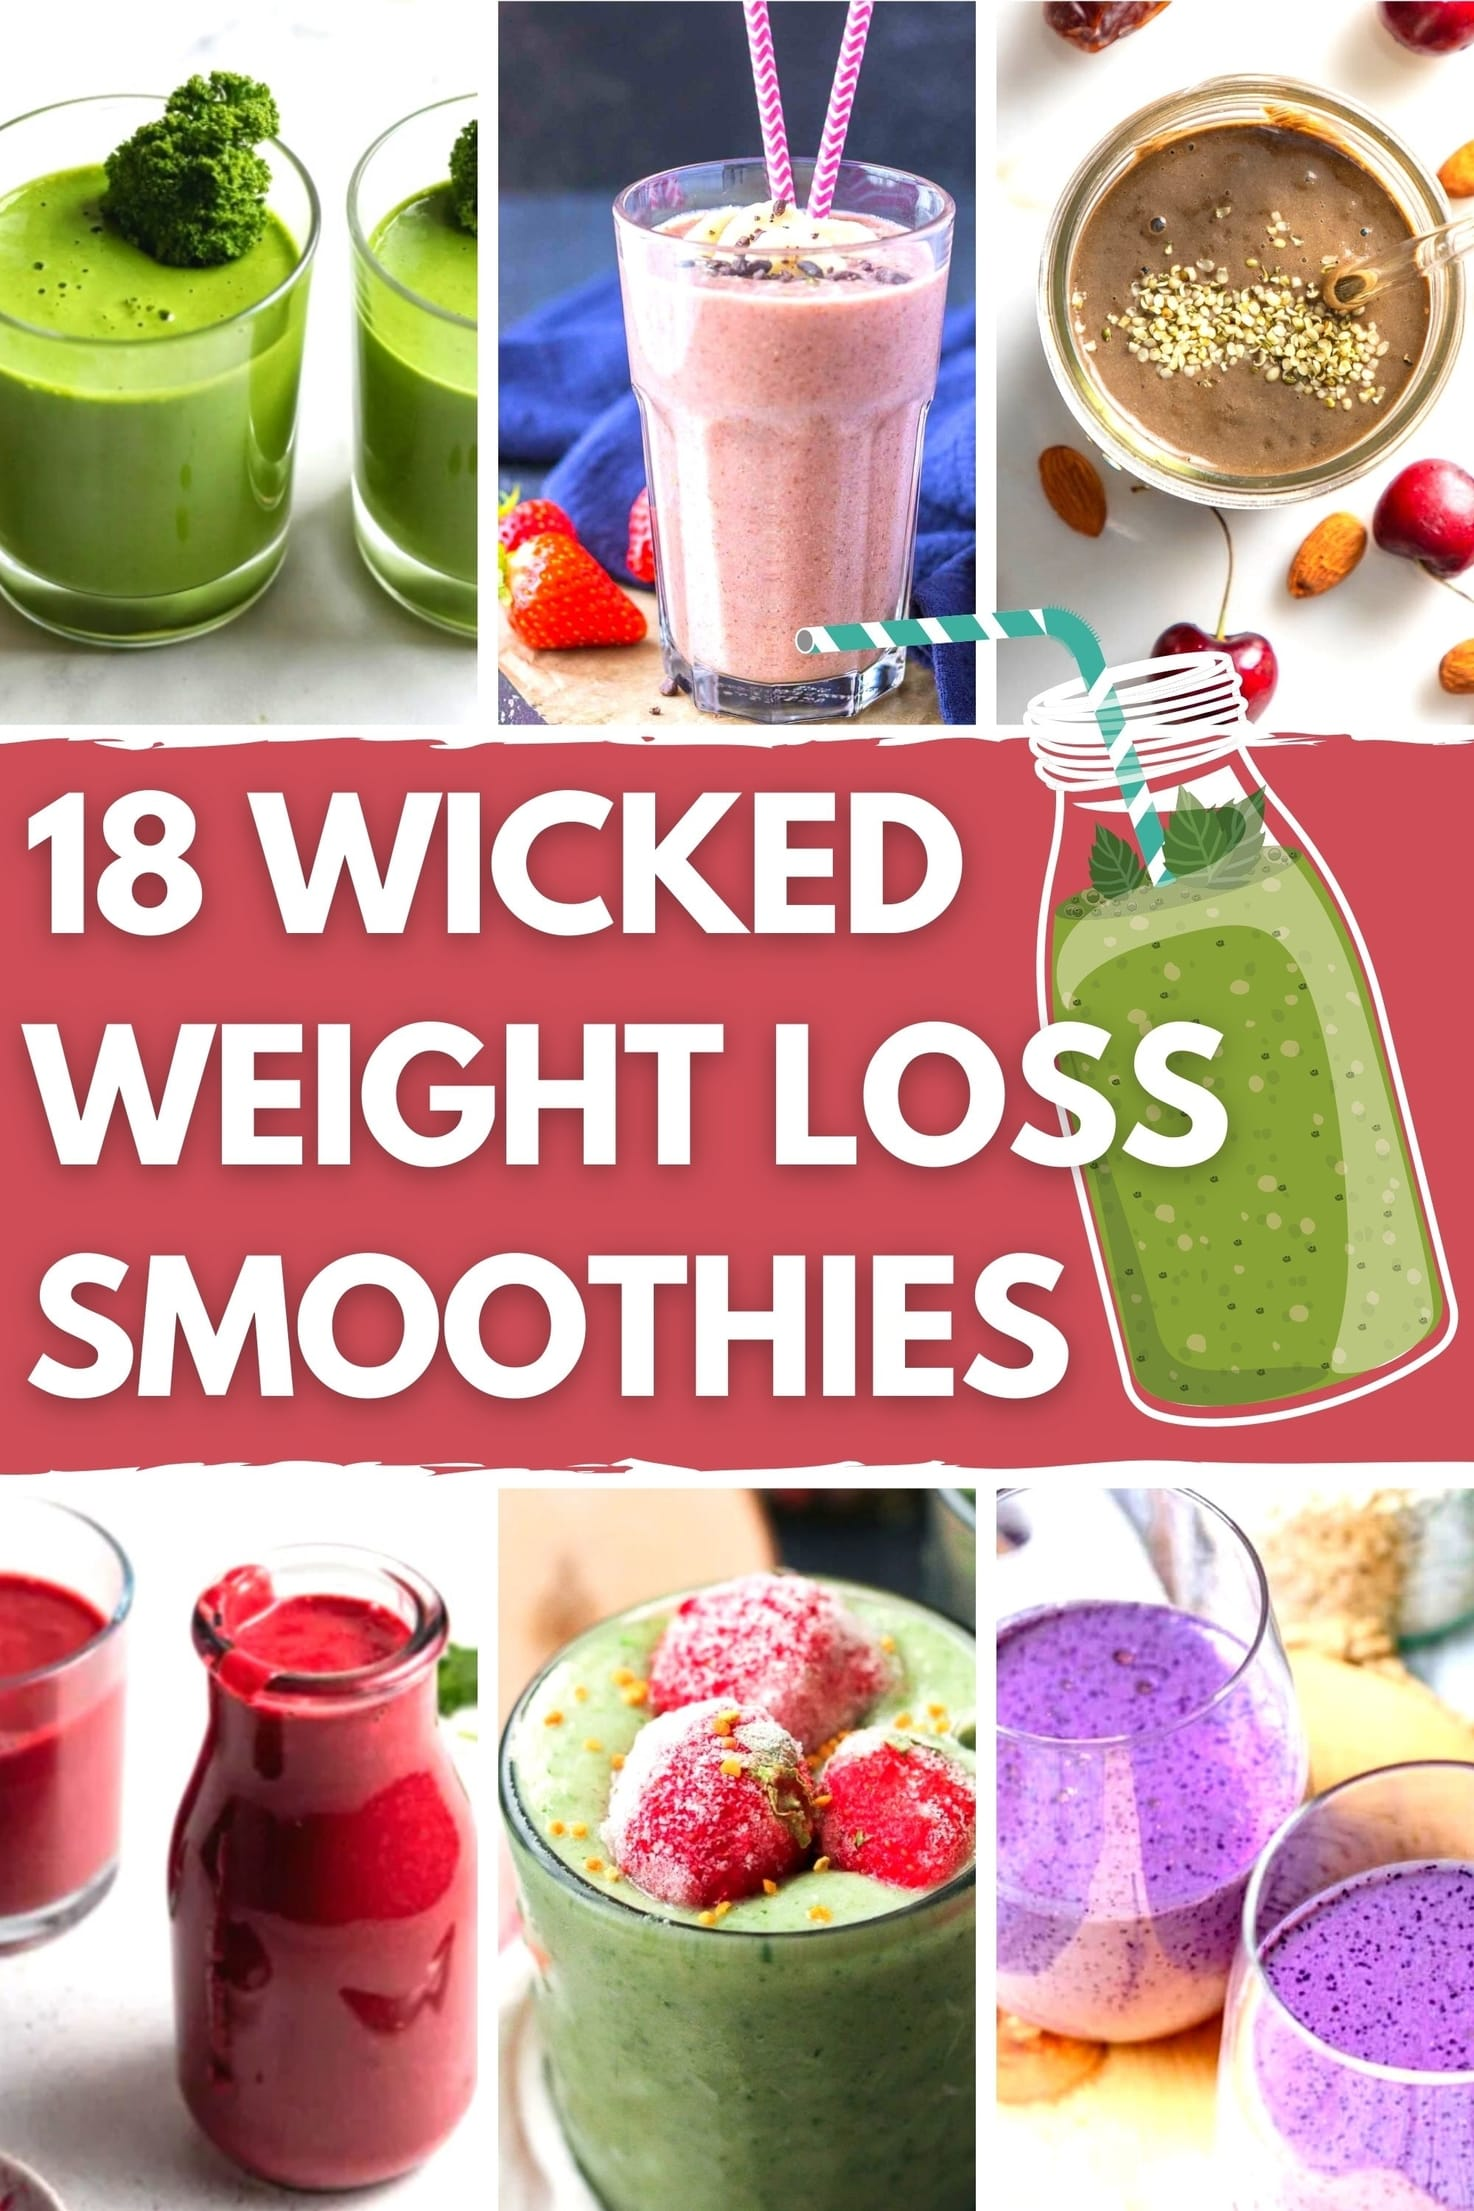 18 Wicked Weight Loss Smoothies - Title Image | Hurry The Food Up